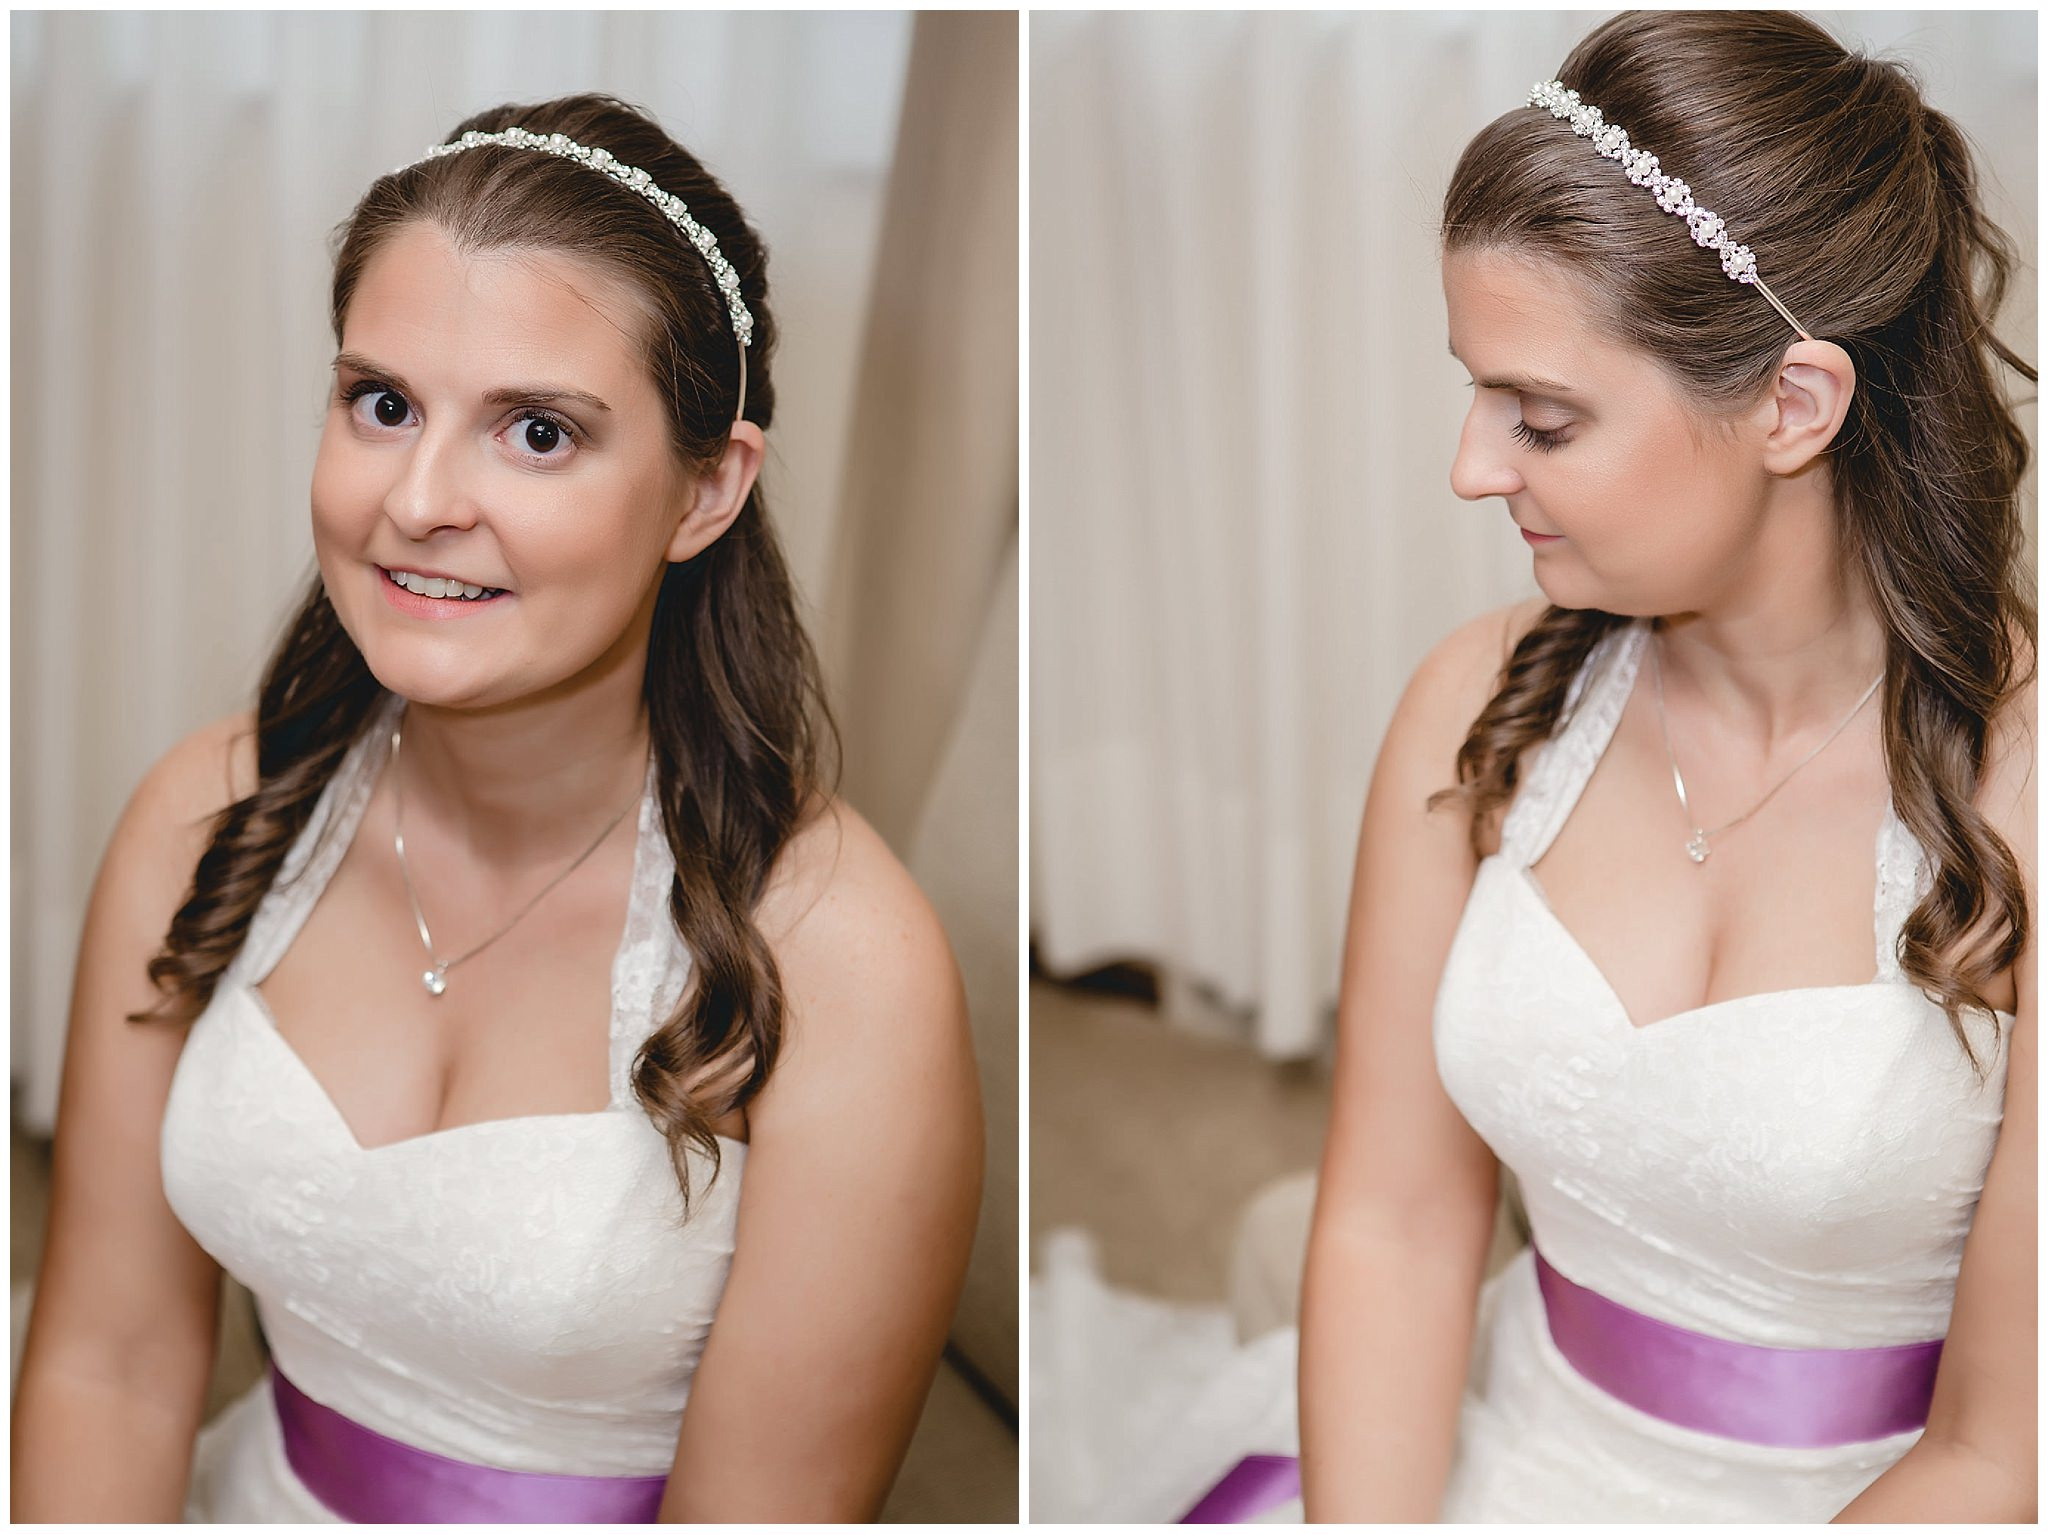 Bridal portrait with dress from David's bridal and hair by Philip Pelusi